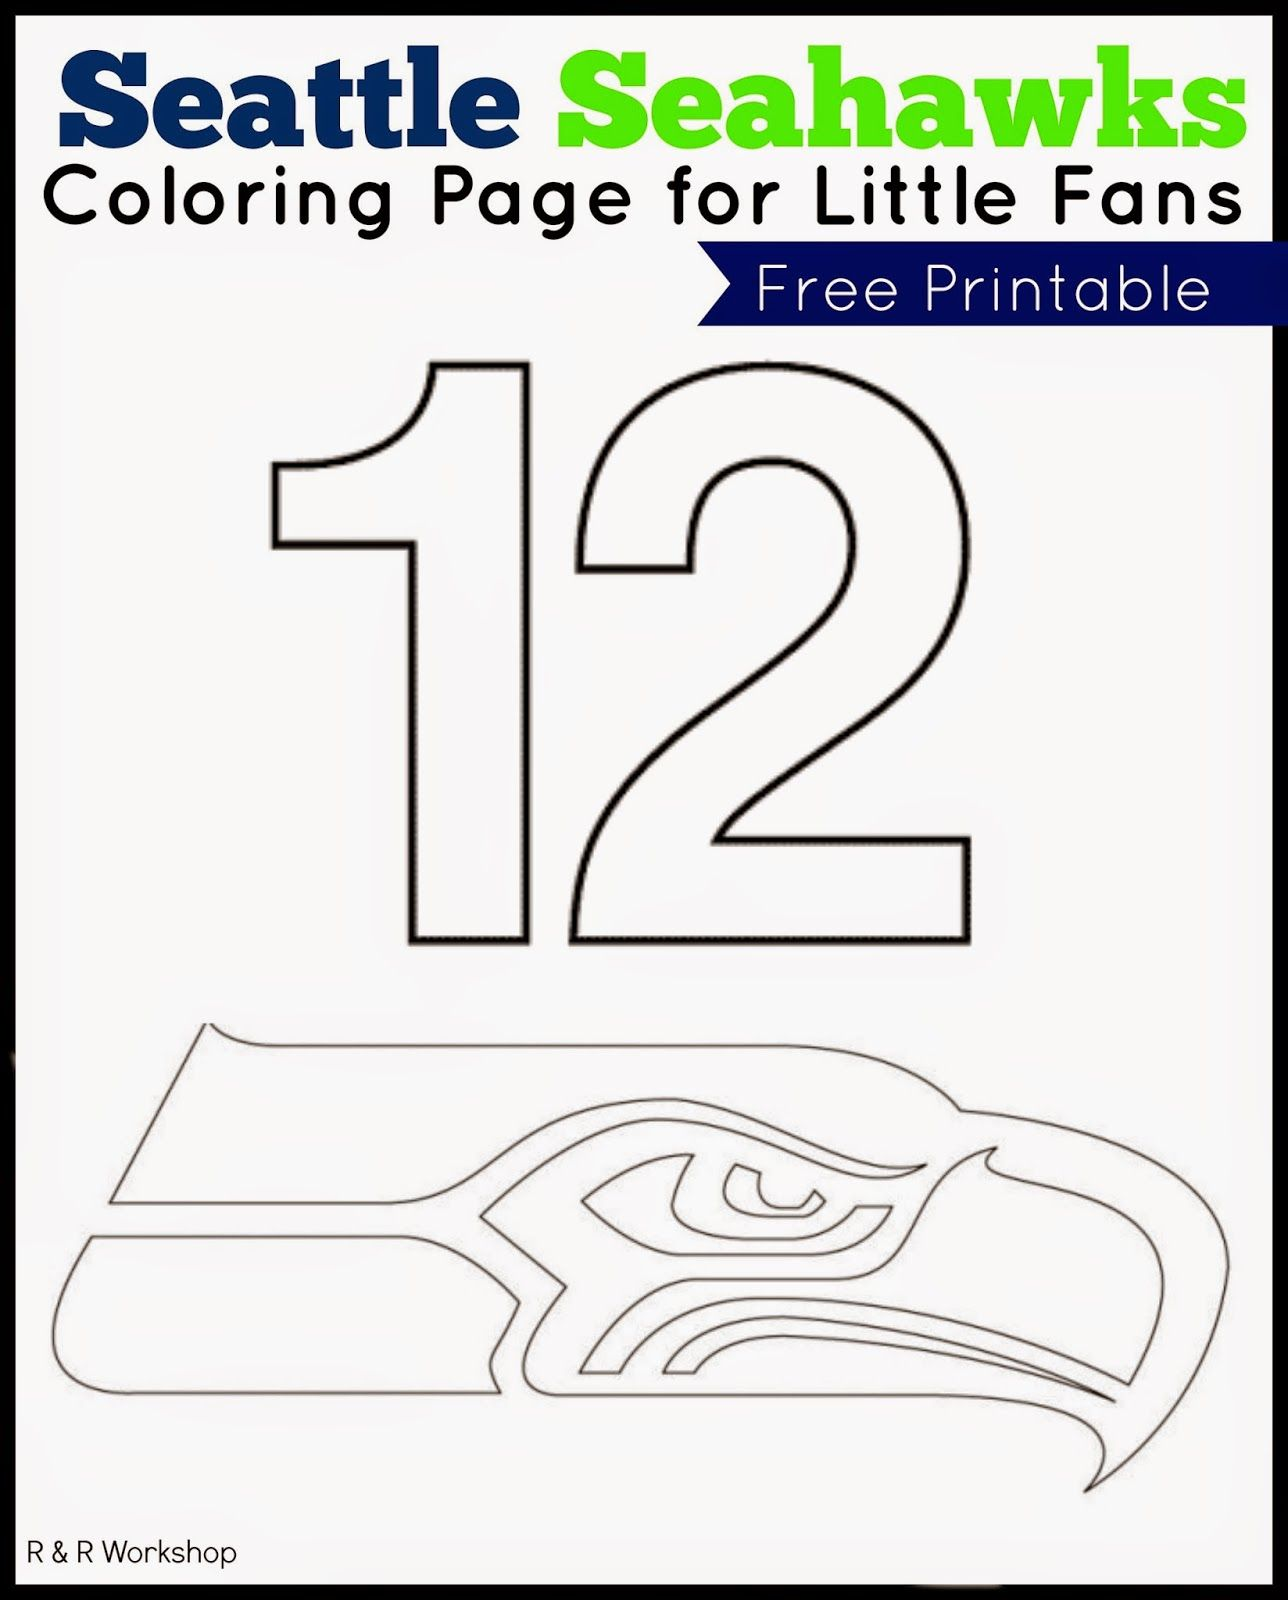 Seahawks 12th Man Coloring Pages